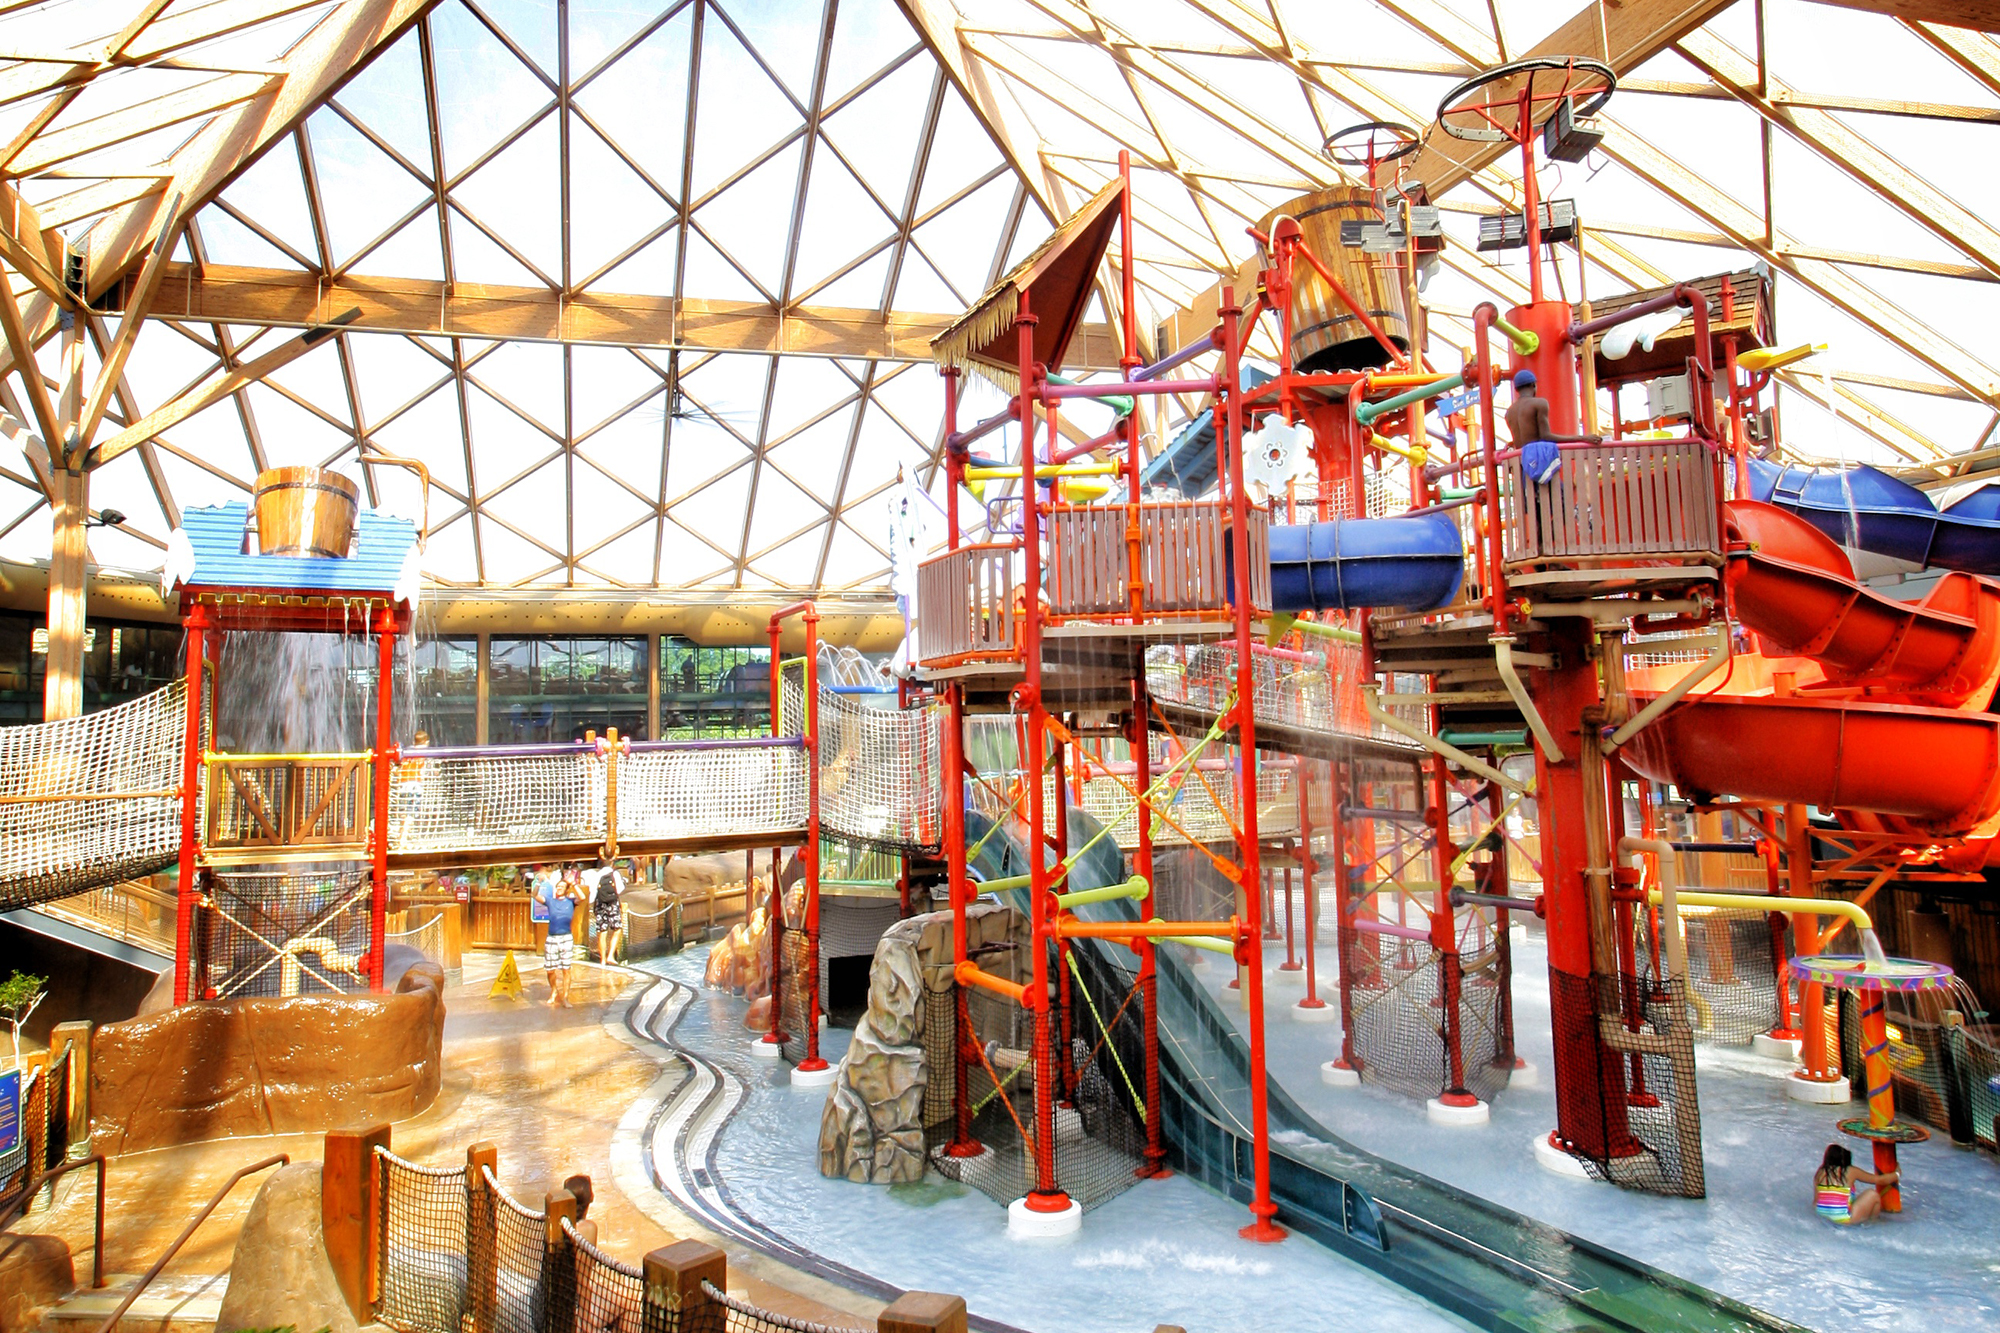 Mountain Waterpark designed and built by ADG